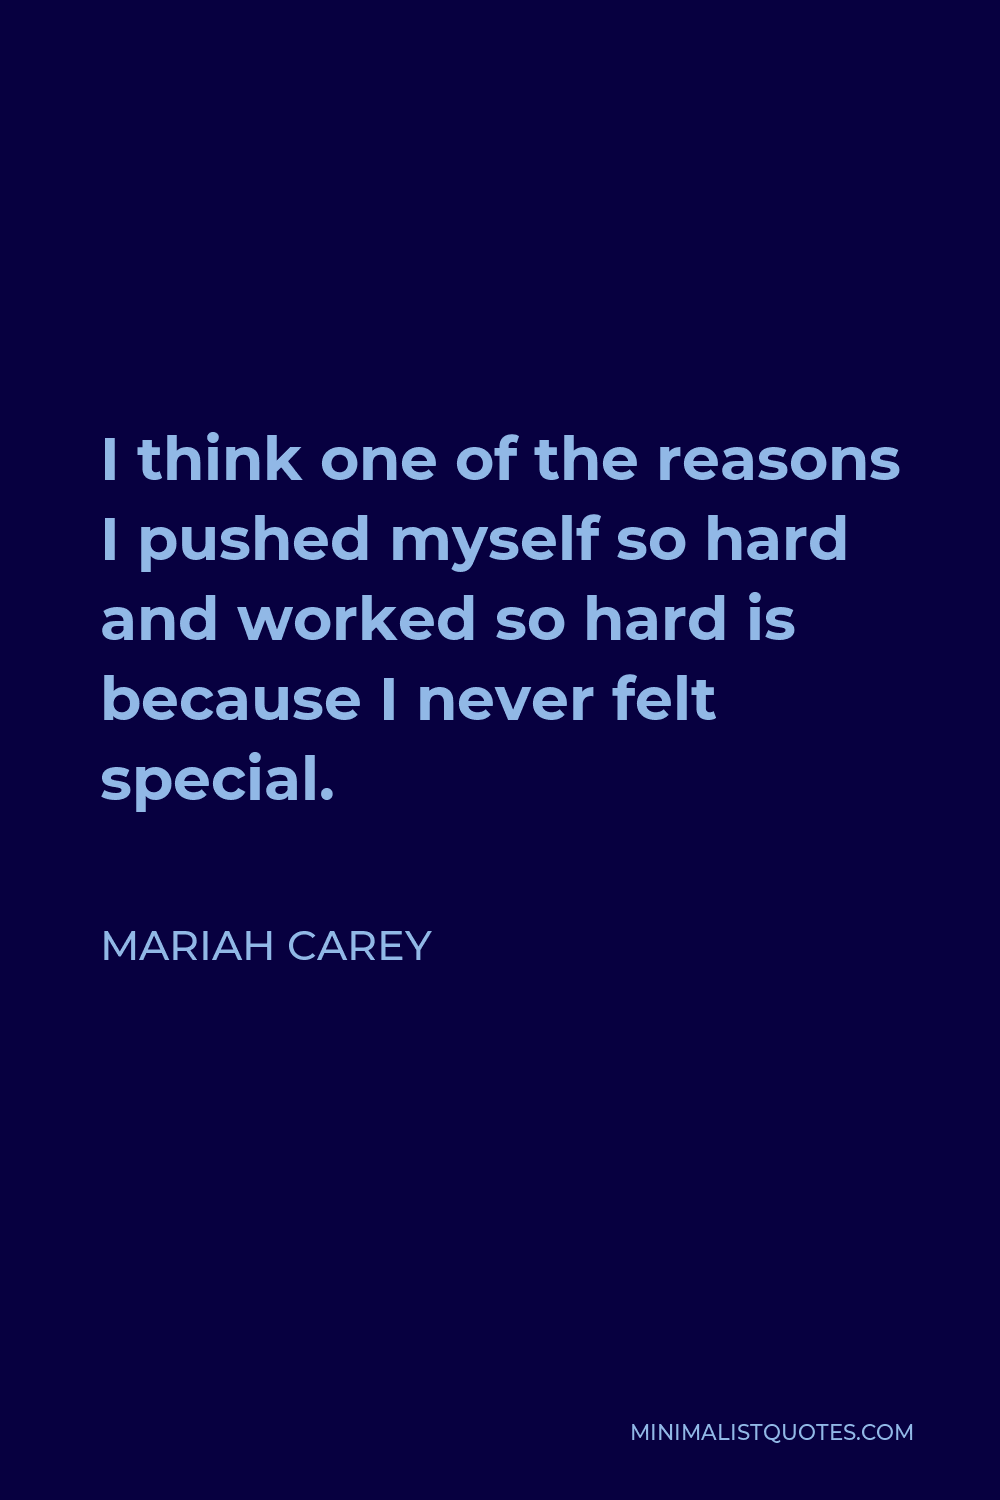 Mariah Carey Quote - I think one of the reasons I pushed myself so hard and worked so hard is because I never felt special.